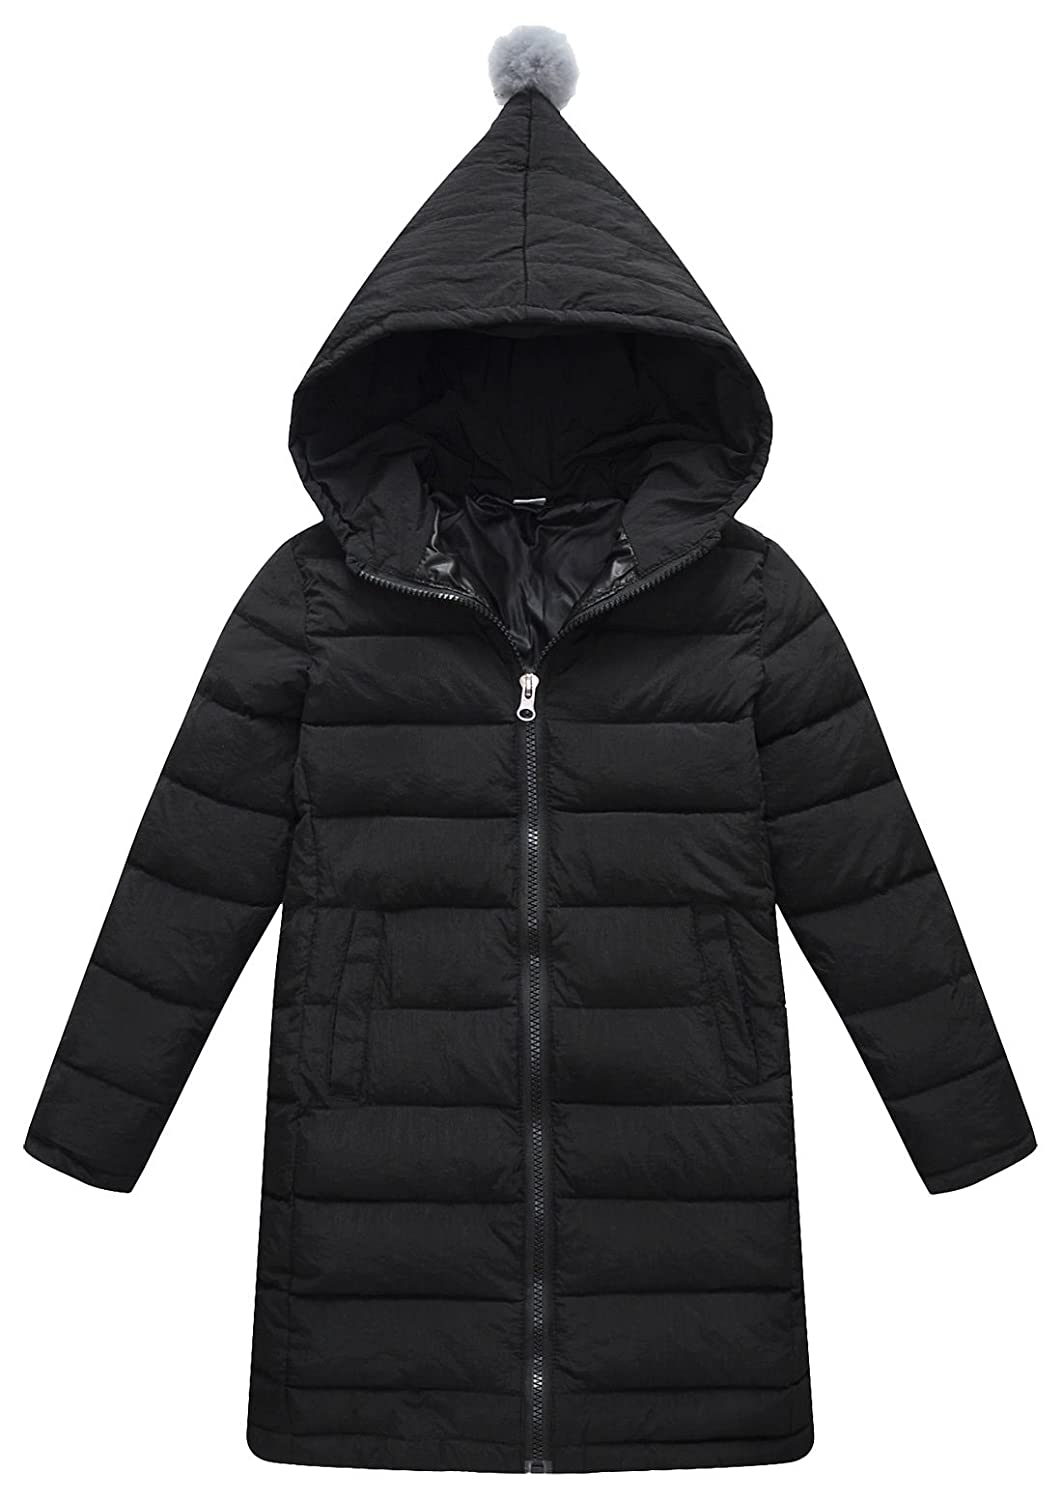 SLUBY Kids Girls Warm Hooded Winter Outwear Padded Puffer Down Jacket Black 7-8Y 140CM